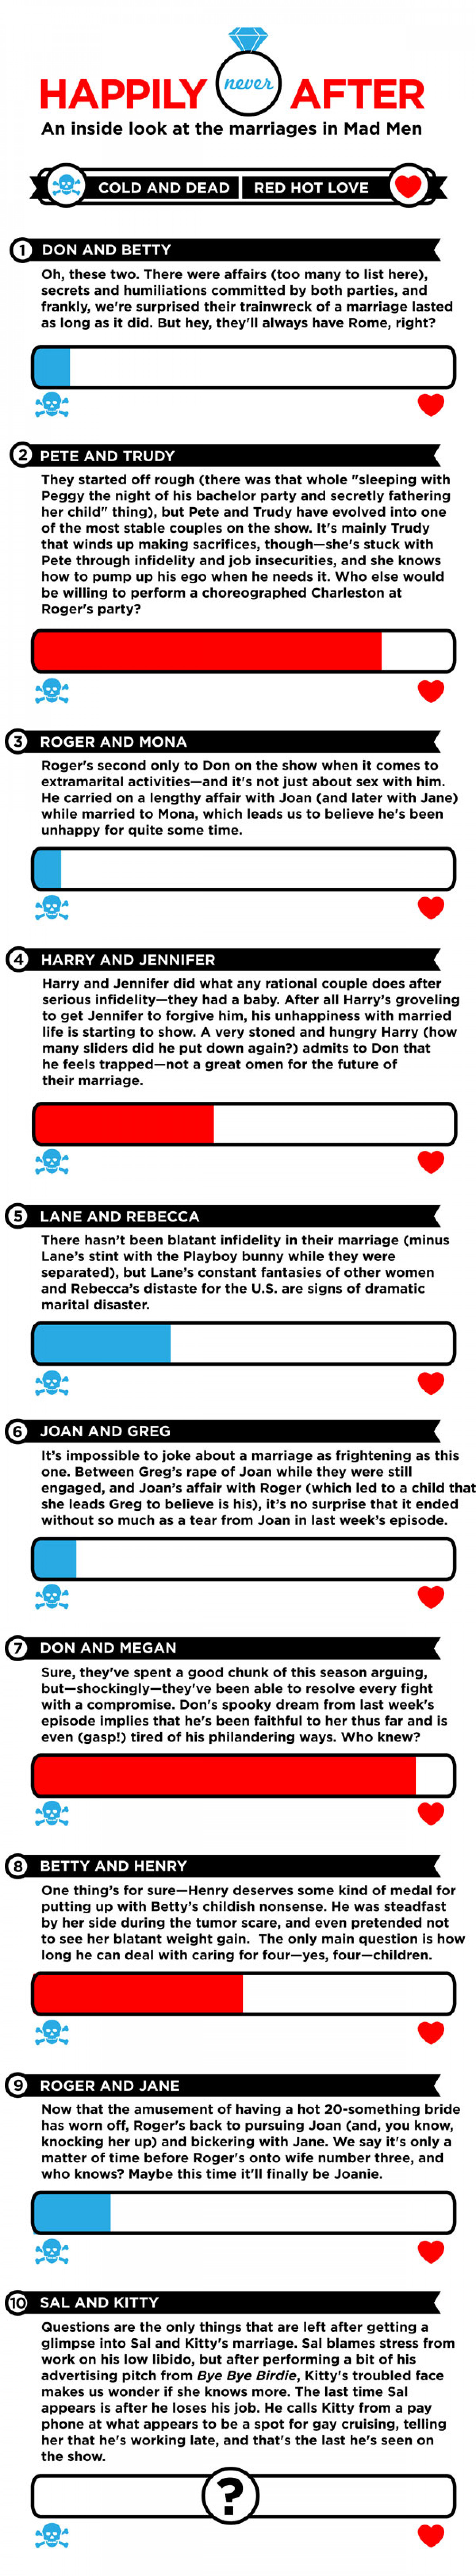 Mad Men: Happily Never After Infographic